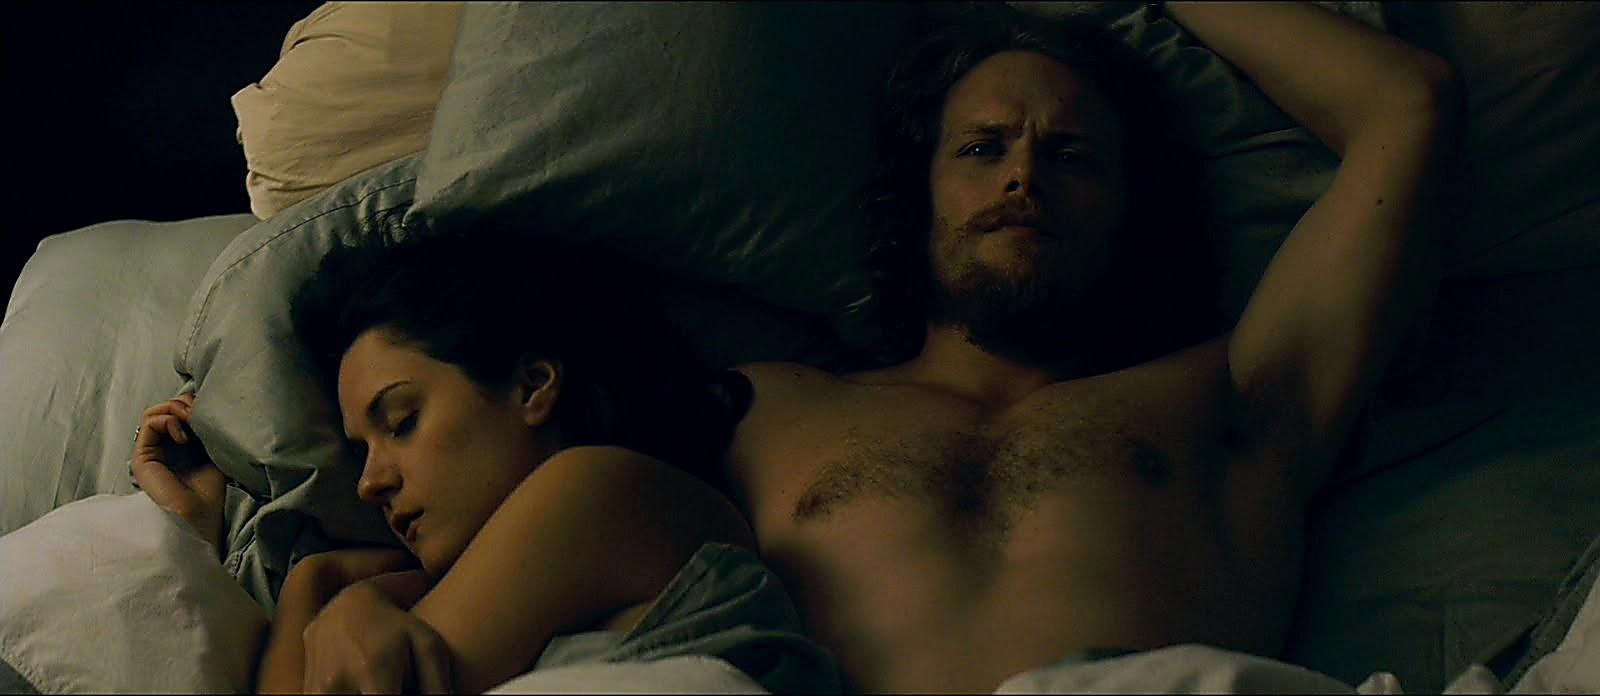 Sam Heughan sexy shirtless scene June 14, 2018, 12pm